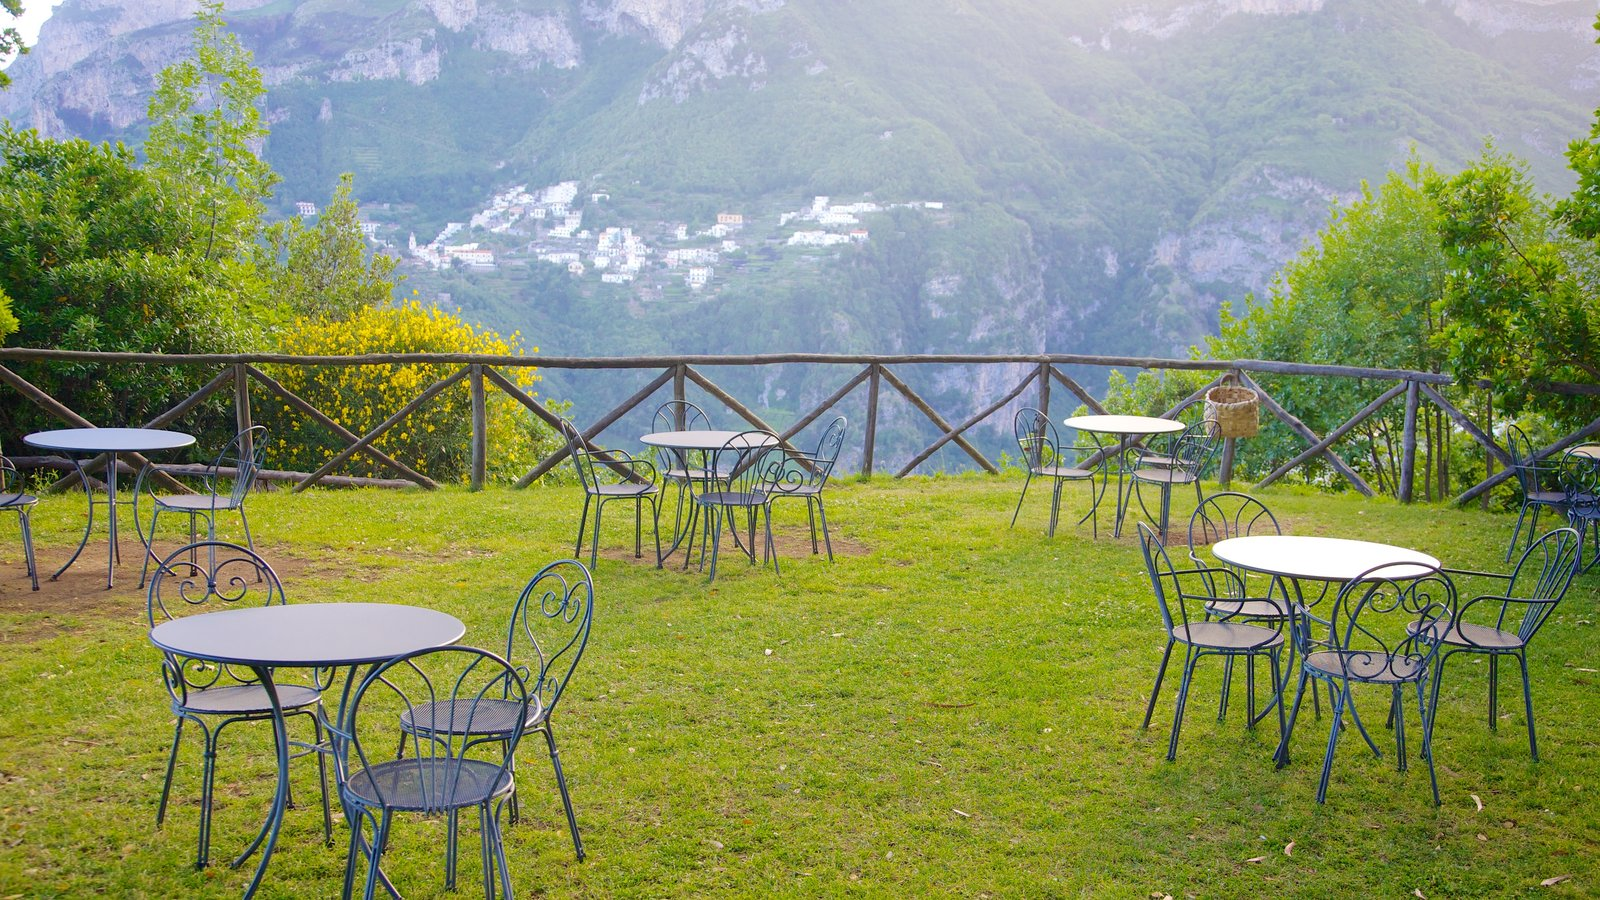 Ravello showing a park and outdoor eating